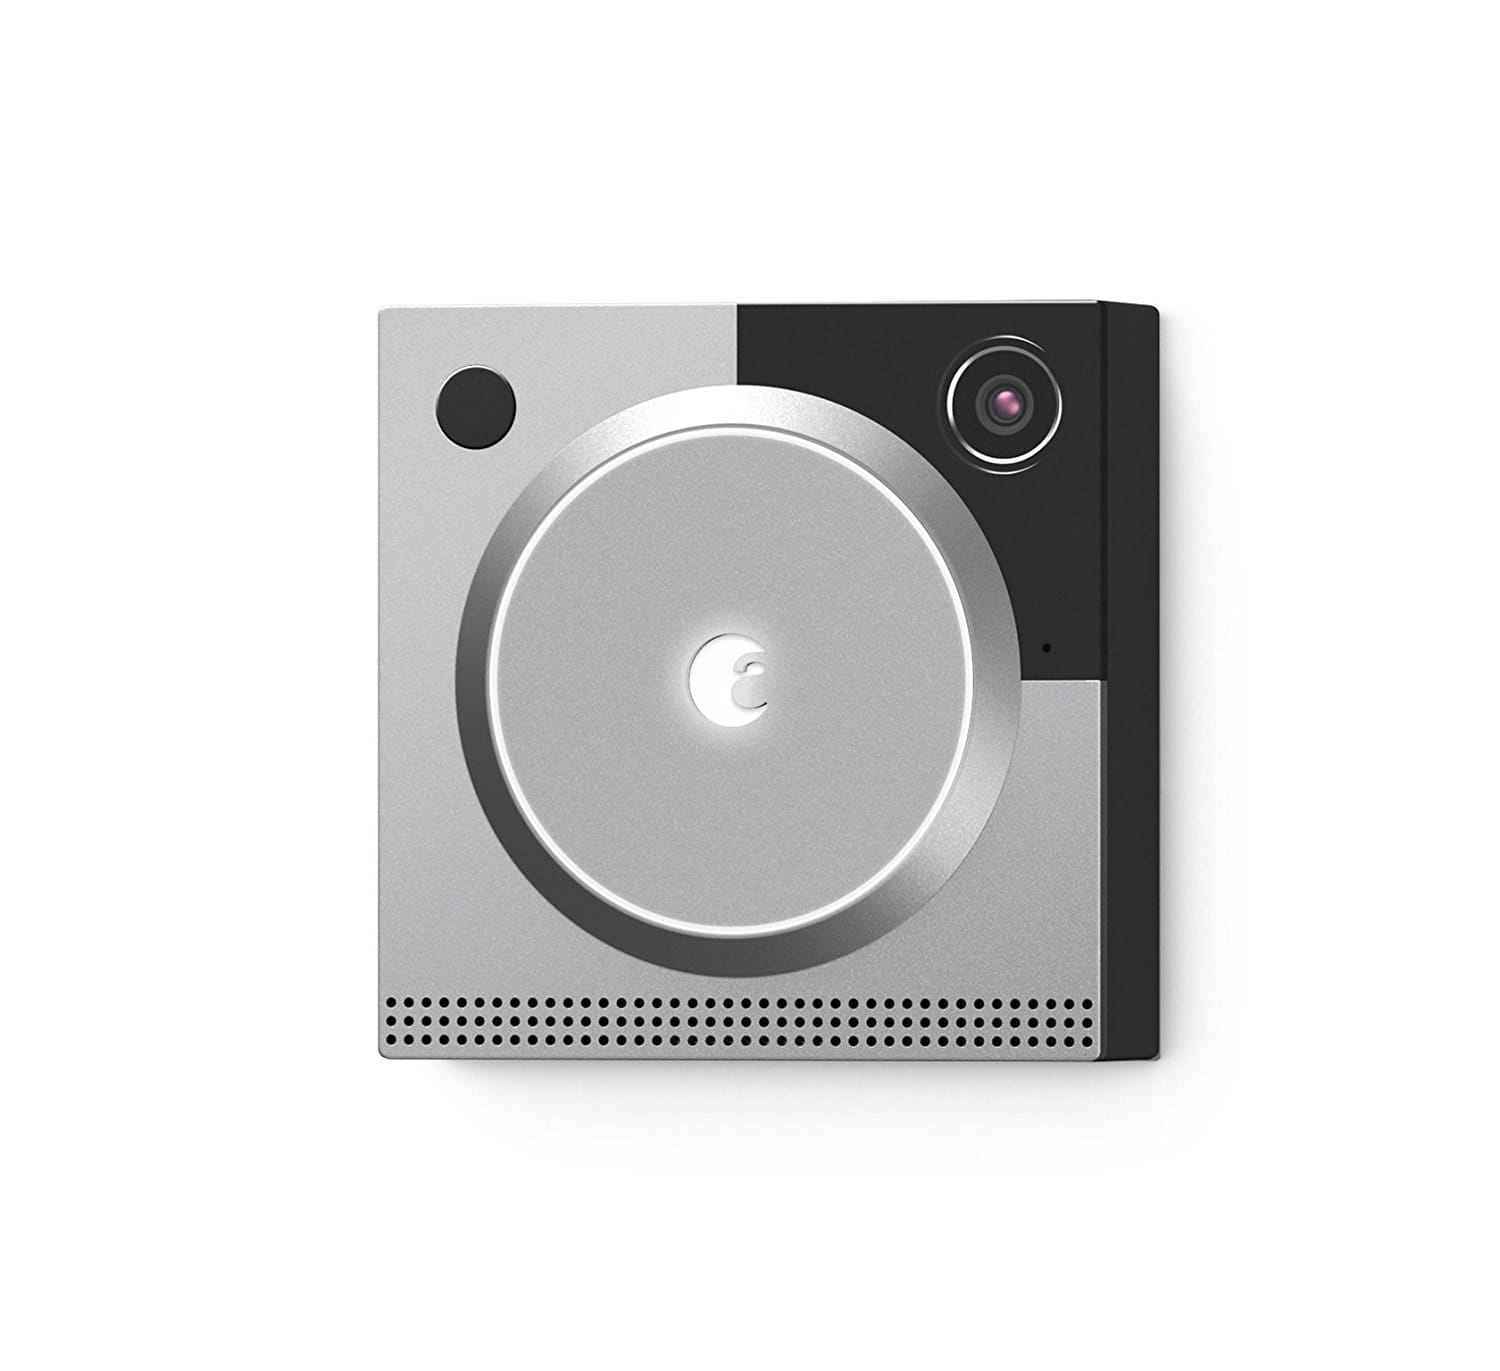 a product image of august smart home doorbell